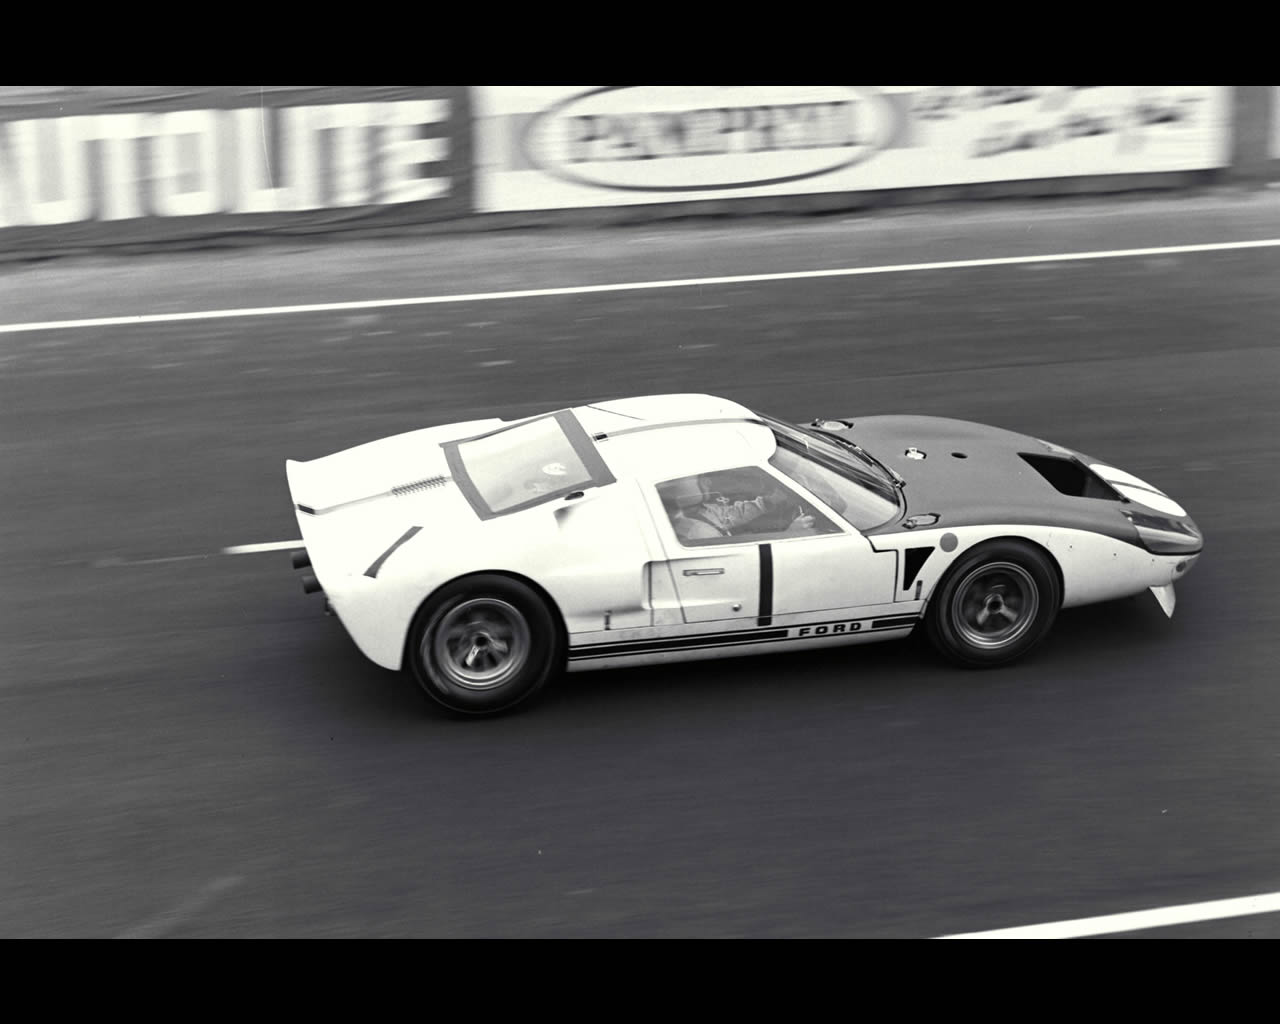 Ford Gt And Gt Mkii